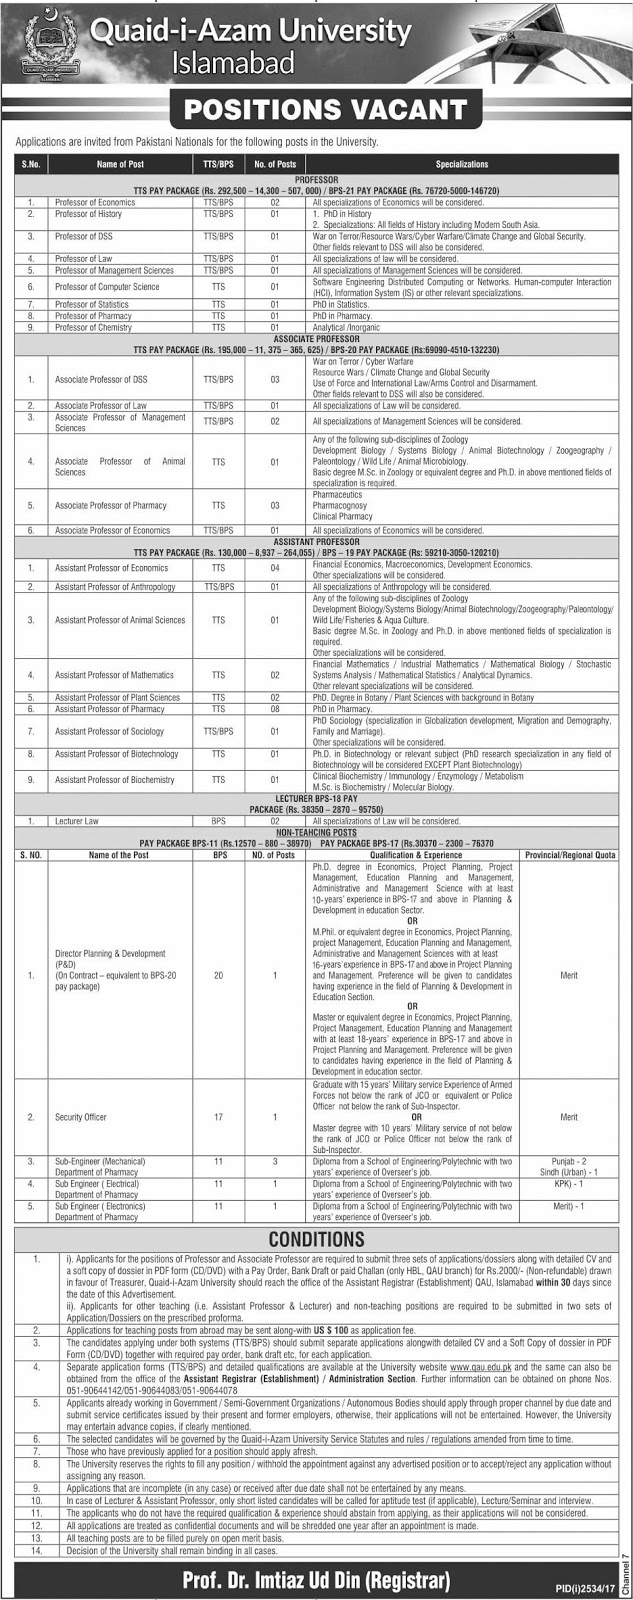 Quaid-i-Azam University Jobs in Islamabad Jobs 2018